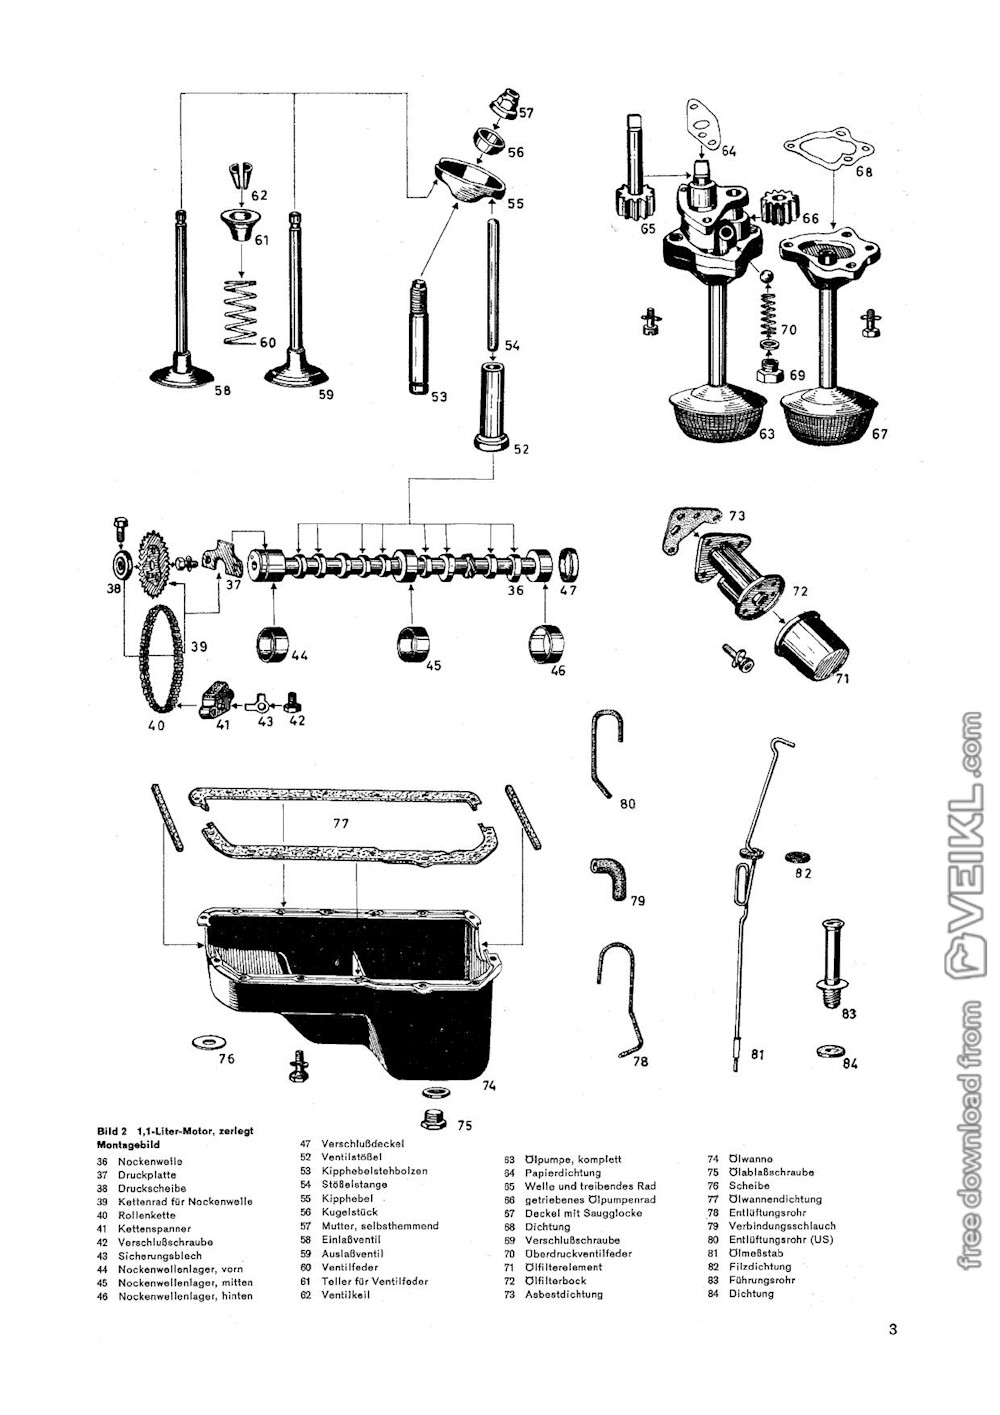 Opel GT / Kadett B / Olympia Engine Workshop Manual 1973